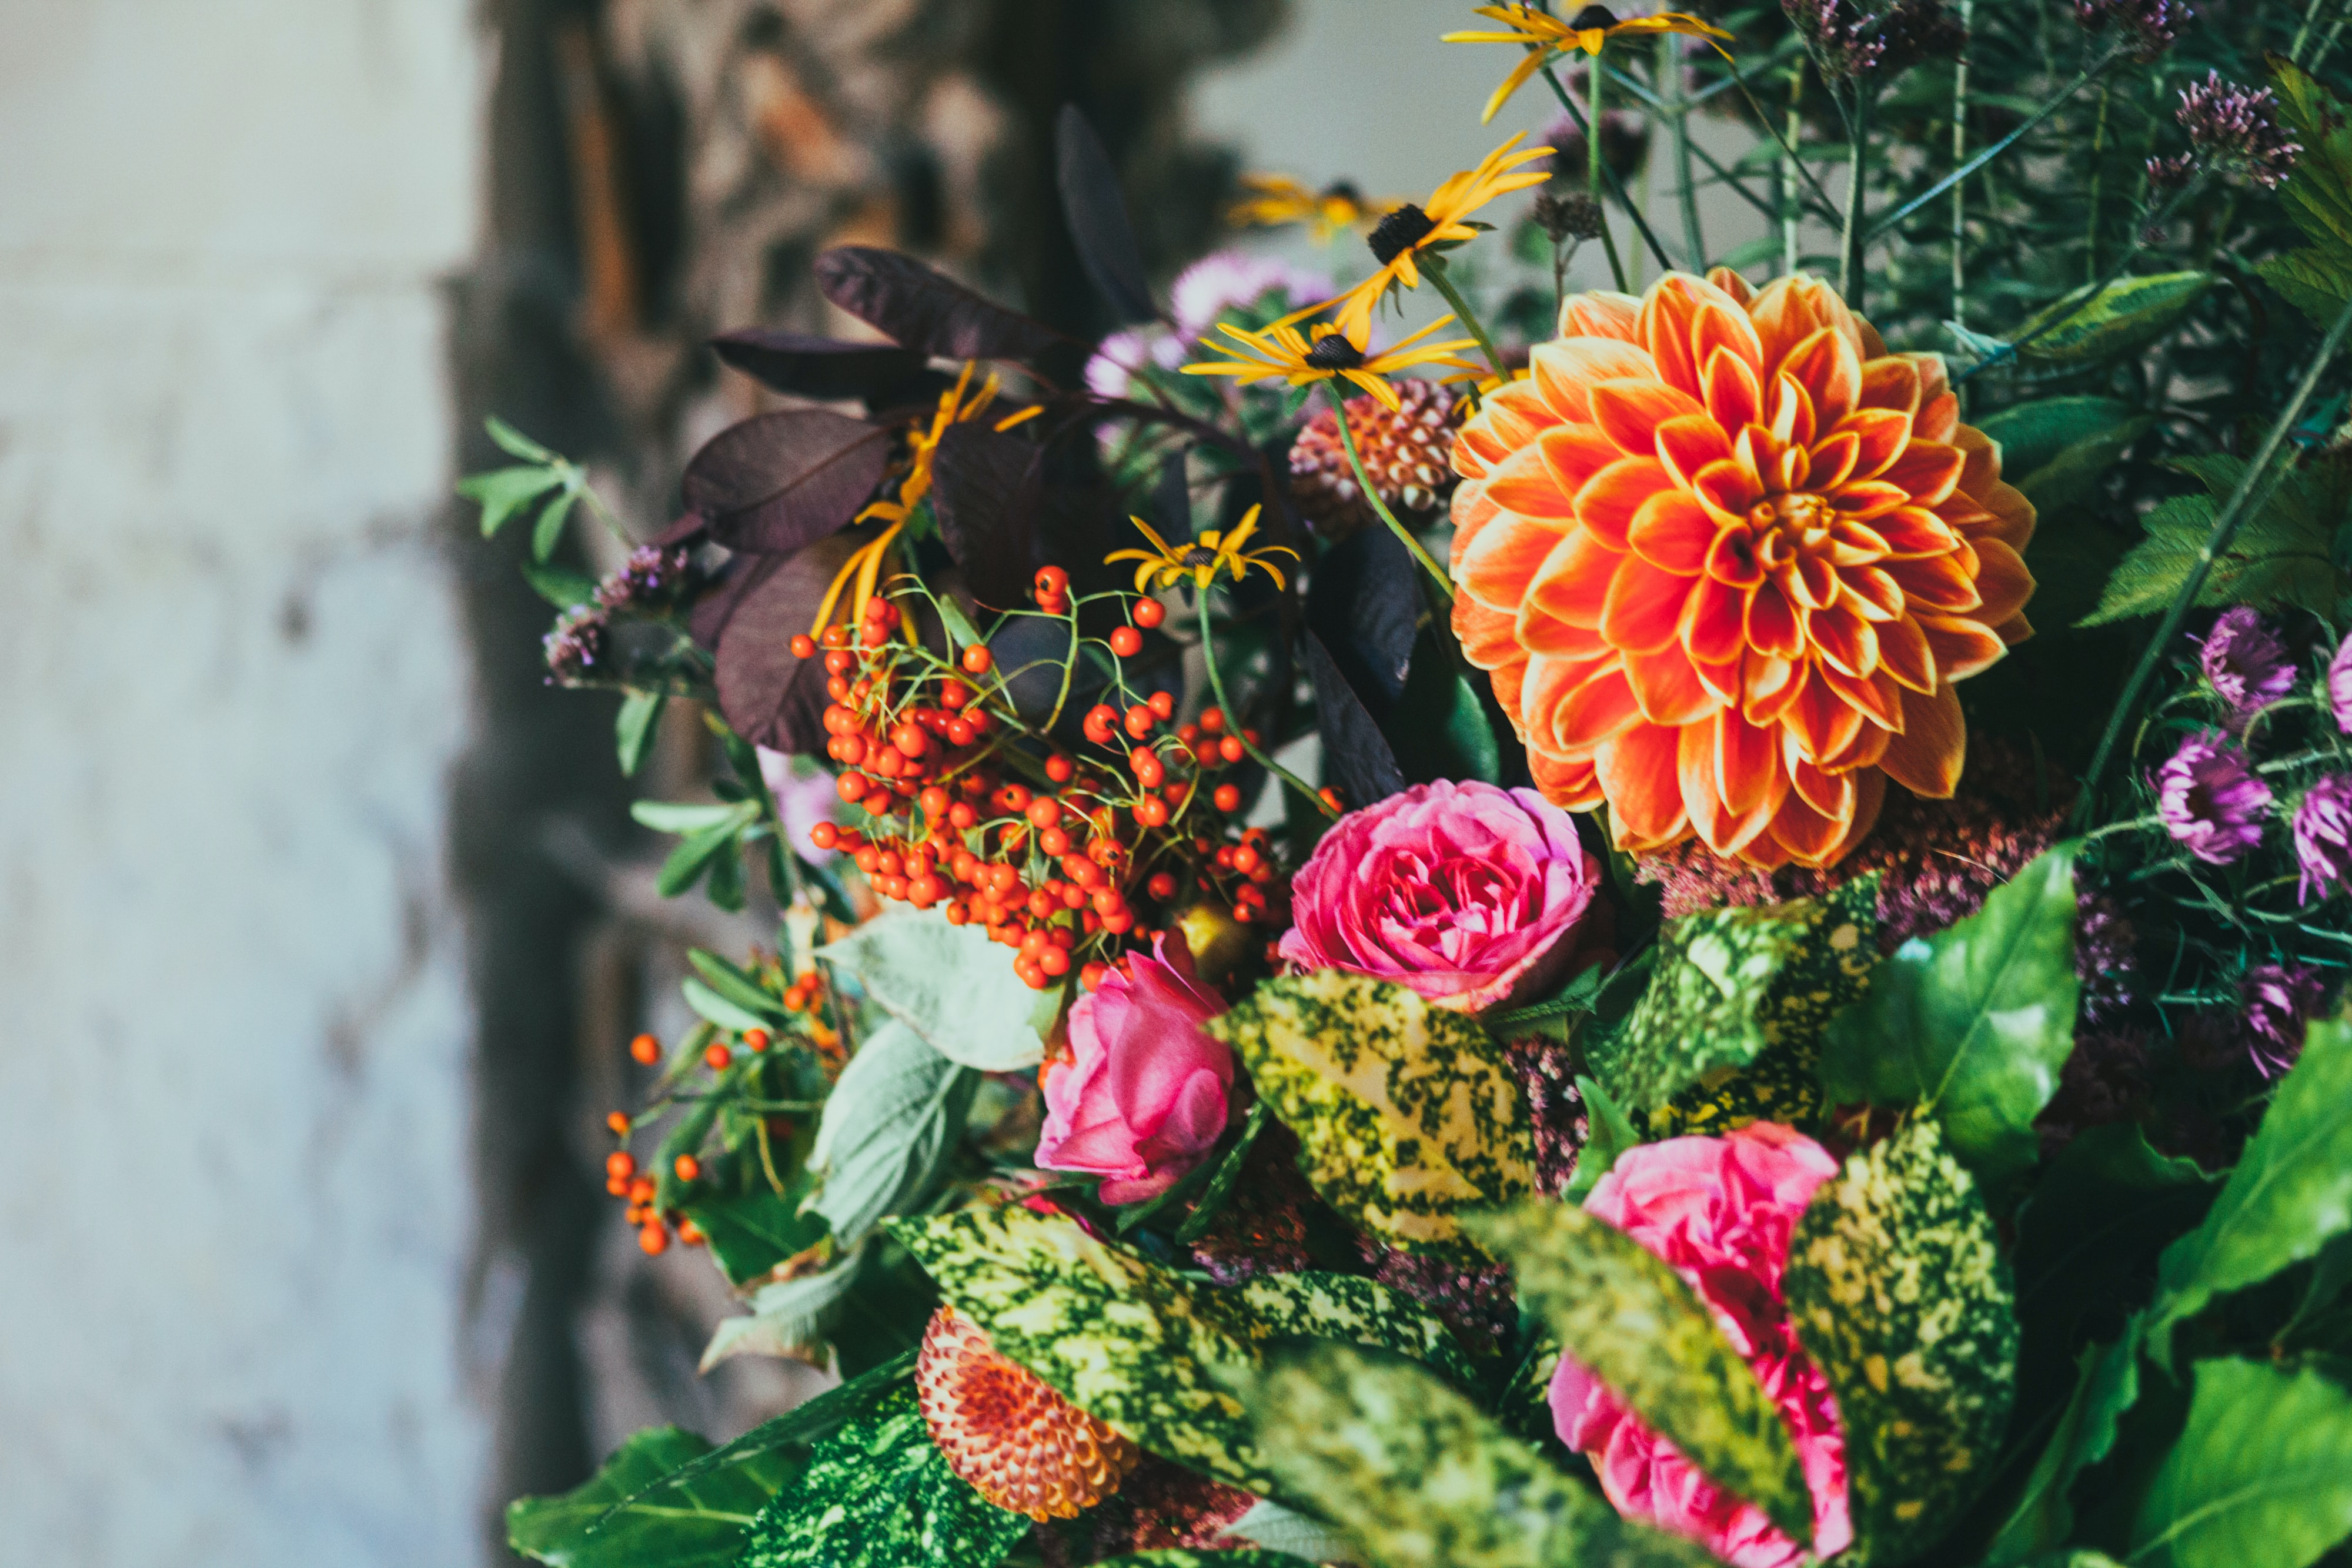 a floral arrangement with dahlias peonies and rowan berries - Flowers